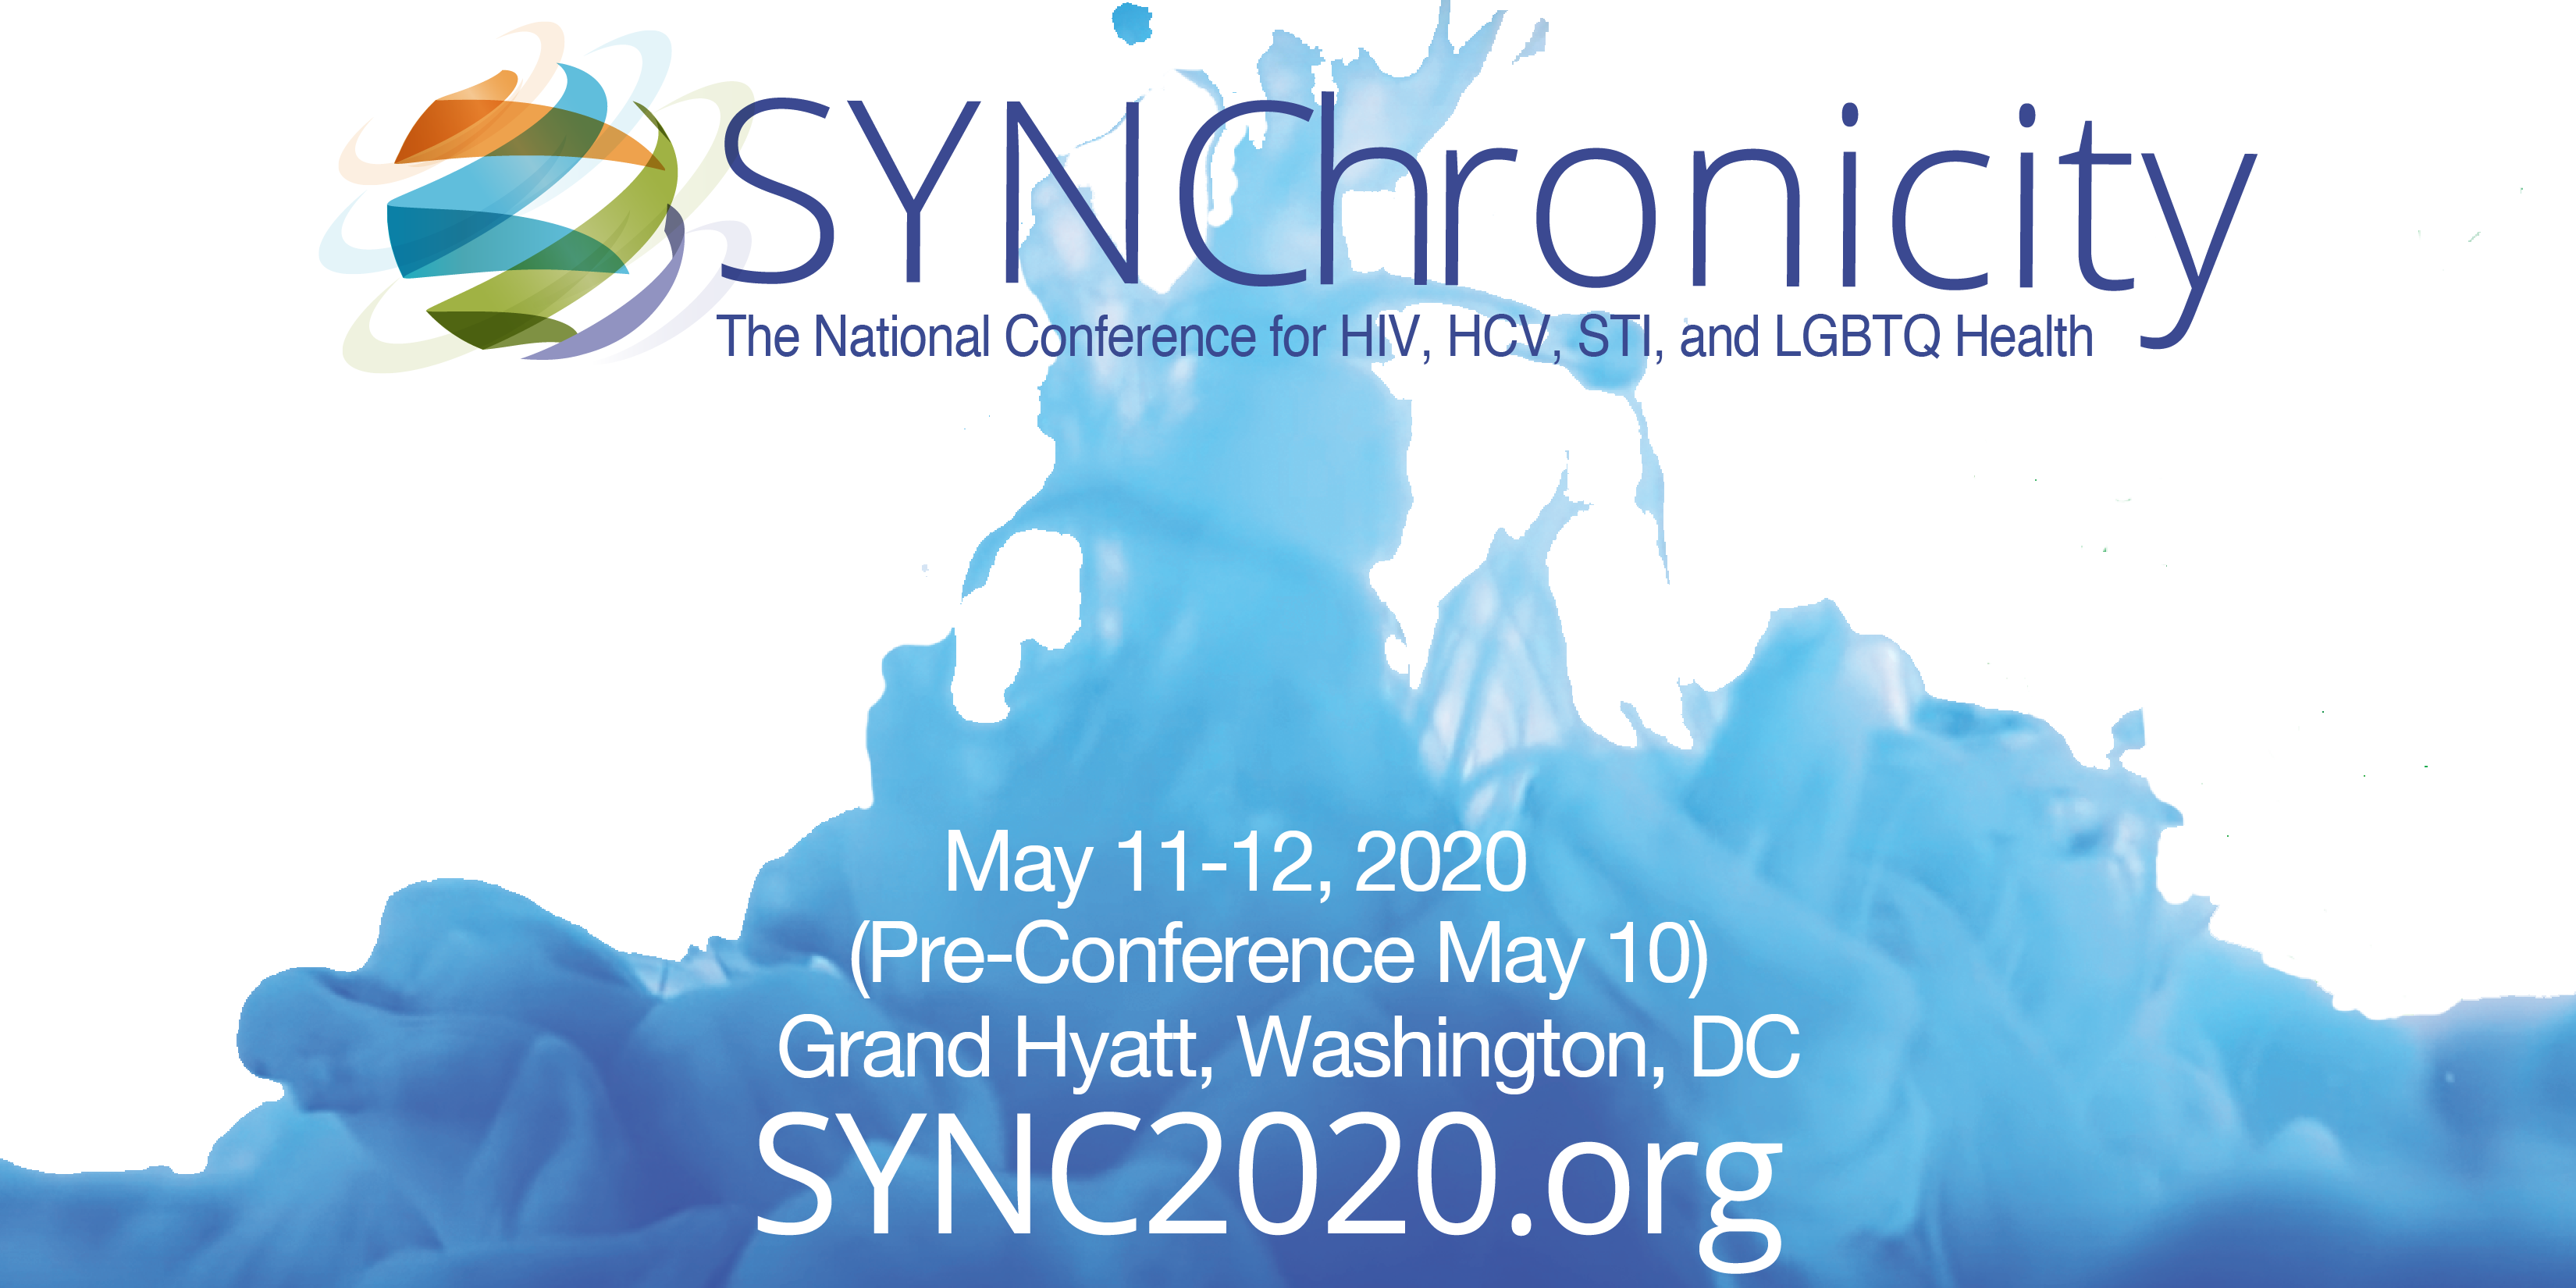 SYNChronicity 2020